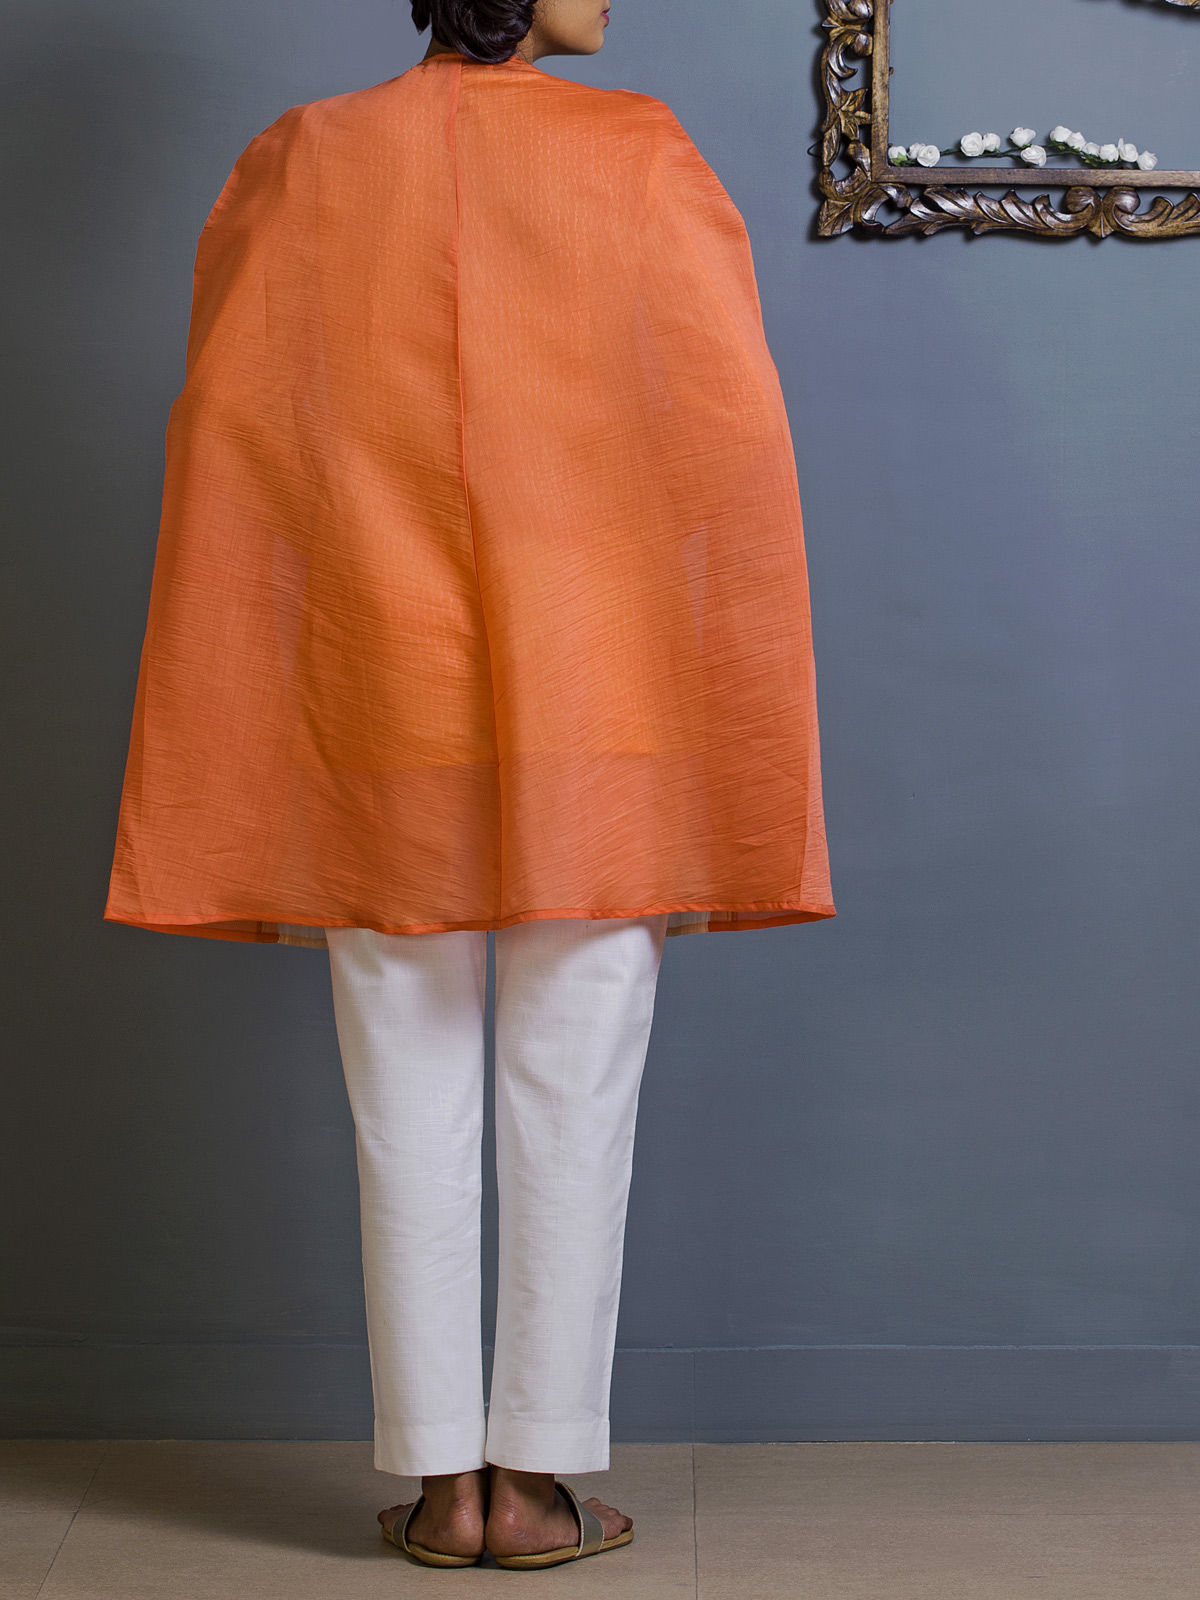 Orange Cape style Chanderi Overlay